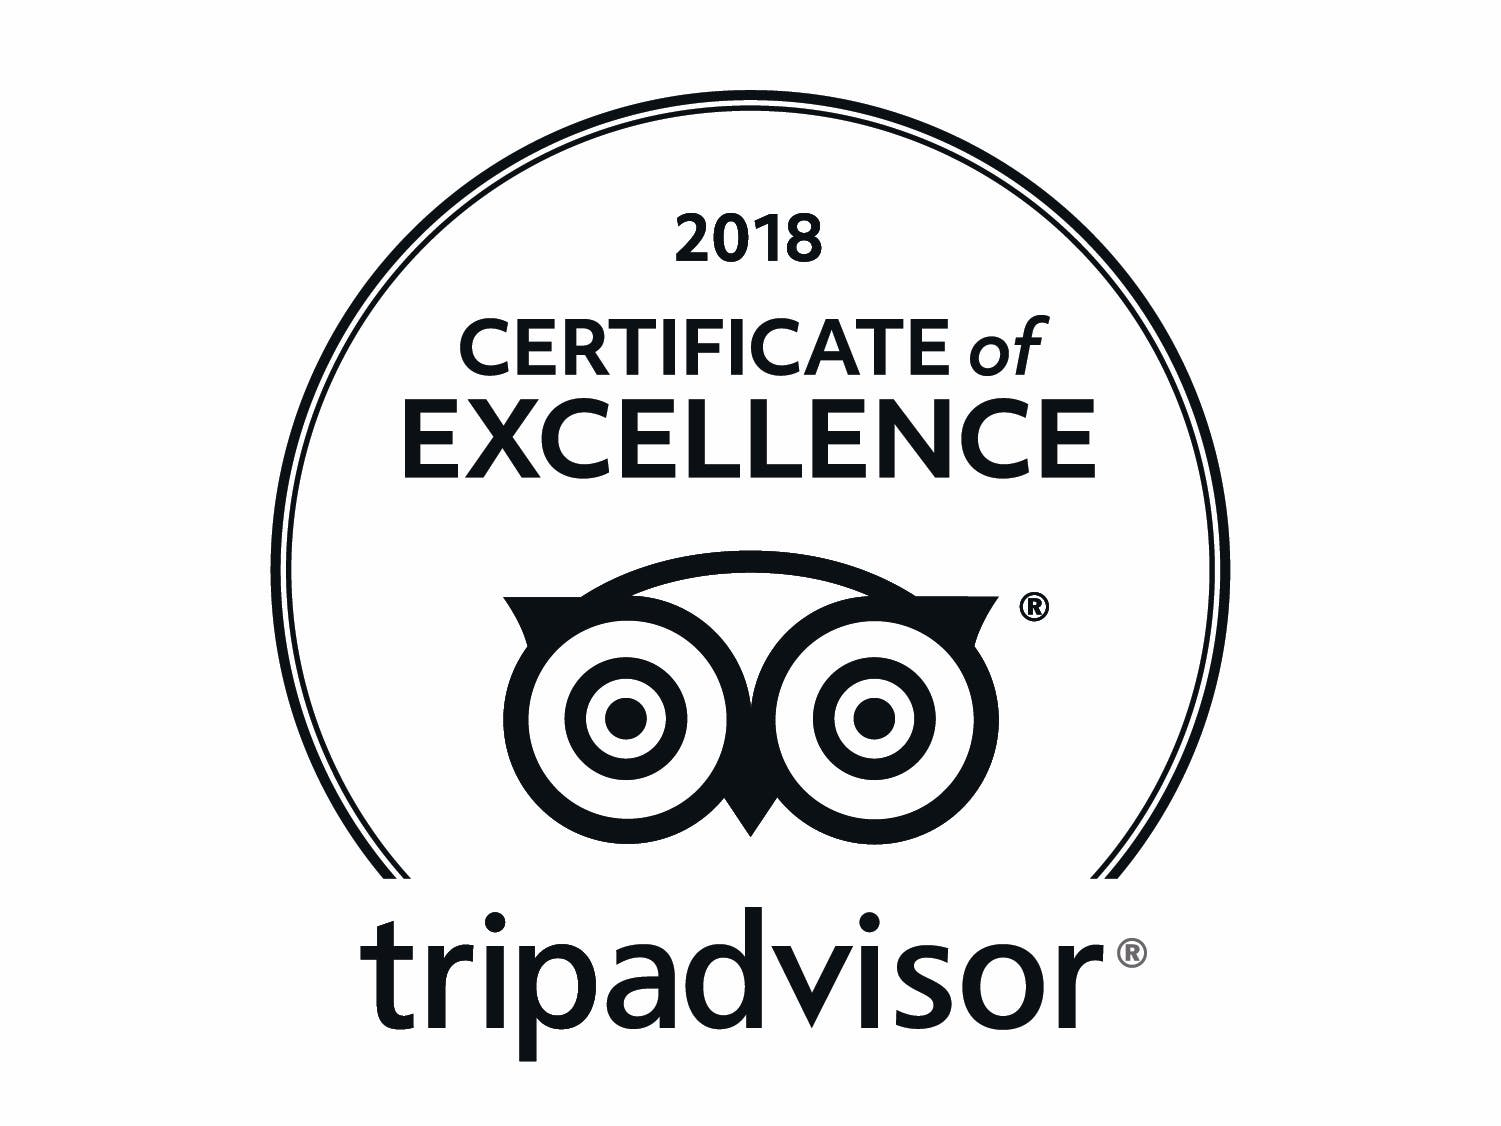 Tripadvisor Certificate of Excellence 2018 for Gleesons Restaurant & Rooms, Roscommon